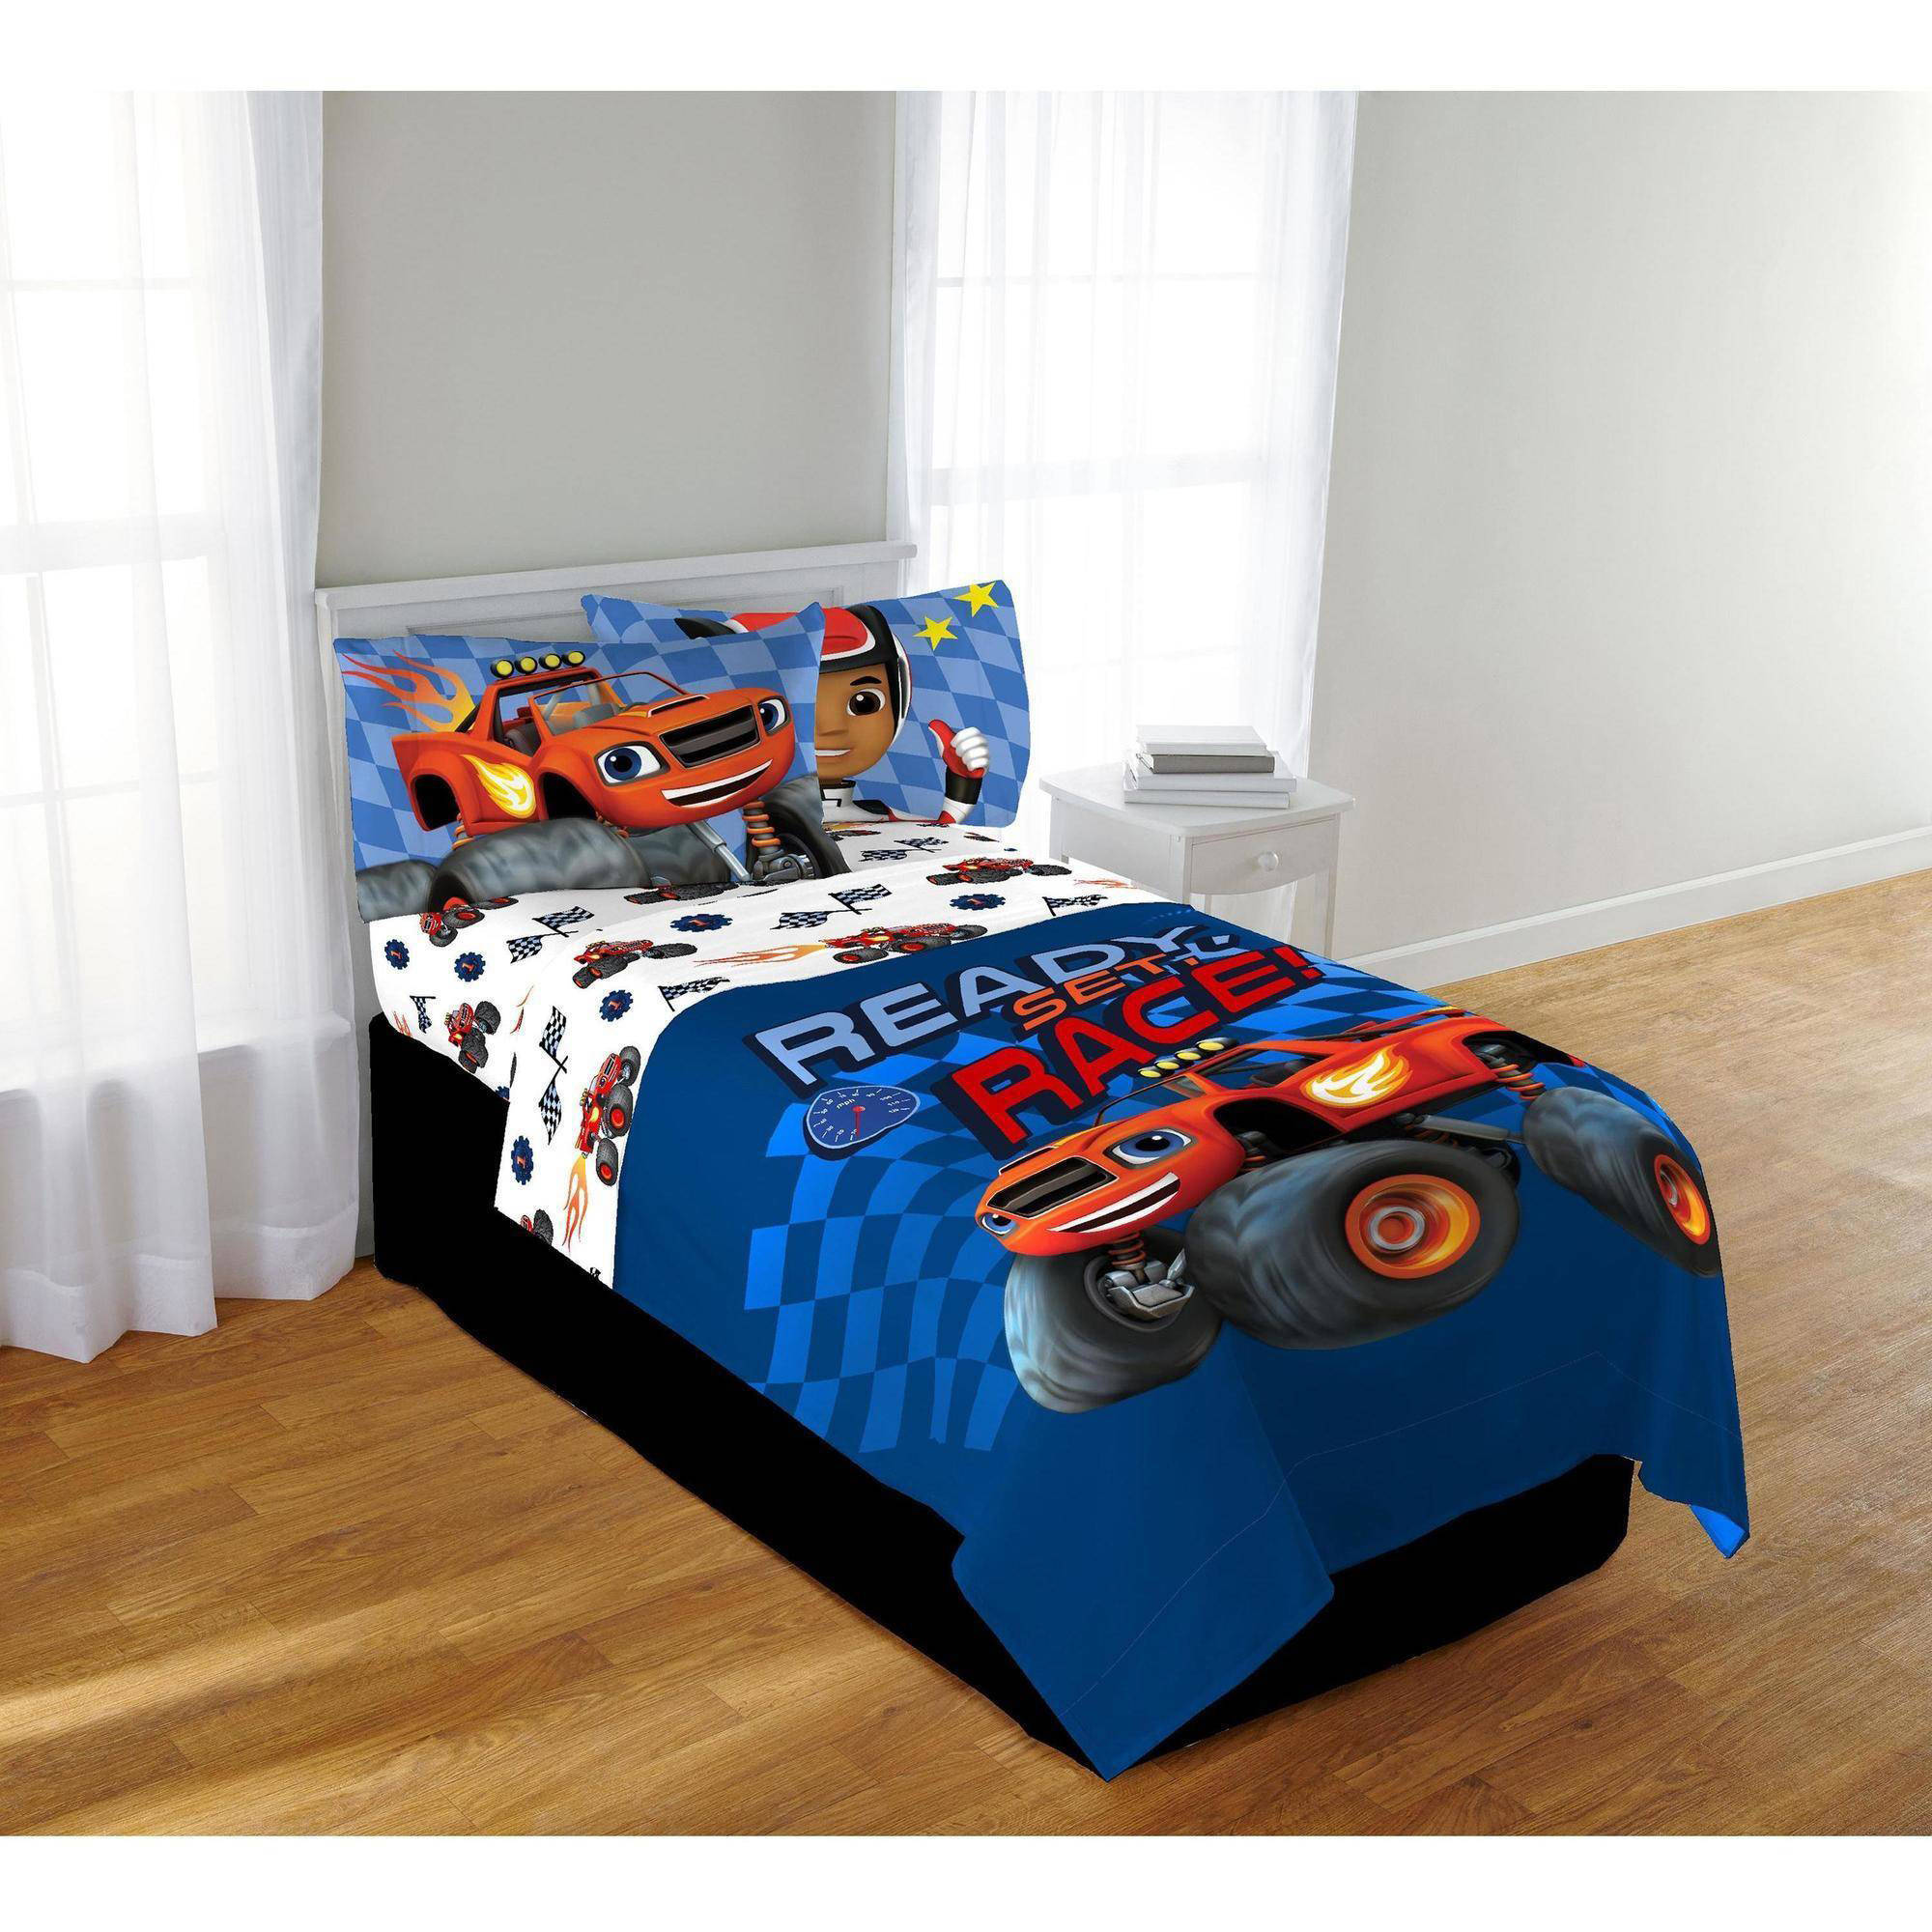 Blaze and the Monster Machines Sheet Set